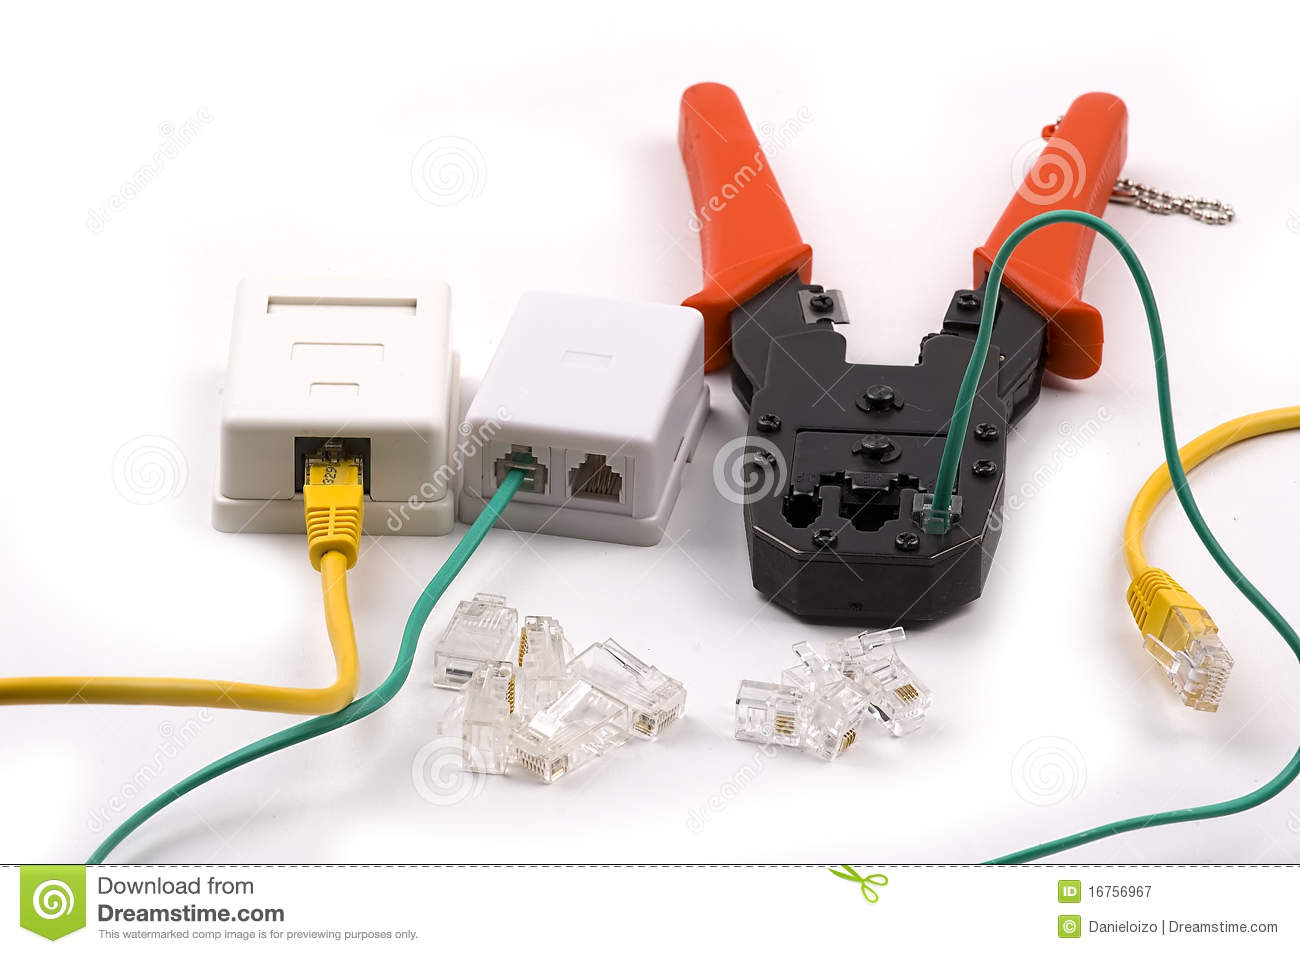 Sockets Crimping Tool Stock Image Of Cable Connection 16756967 Rj45 Socket Wiring